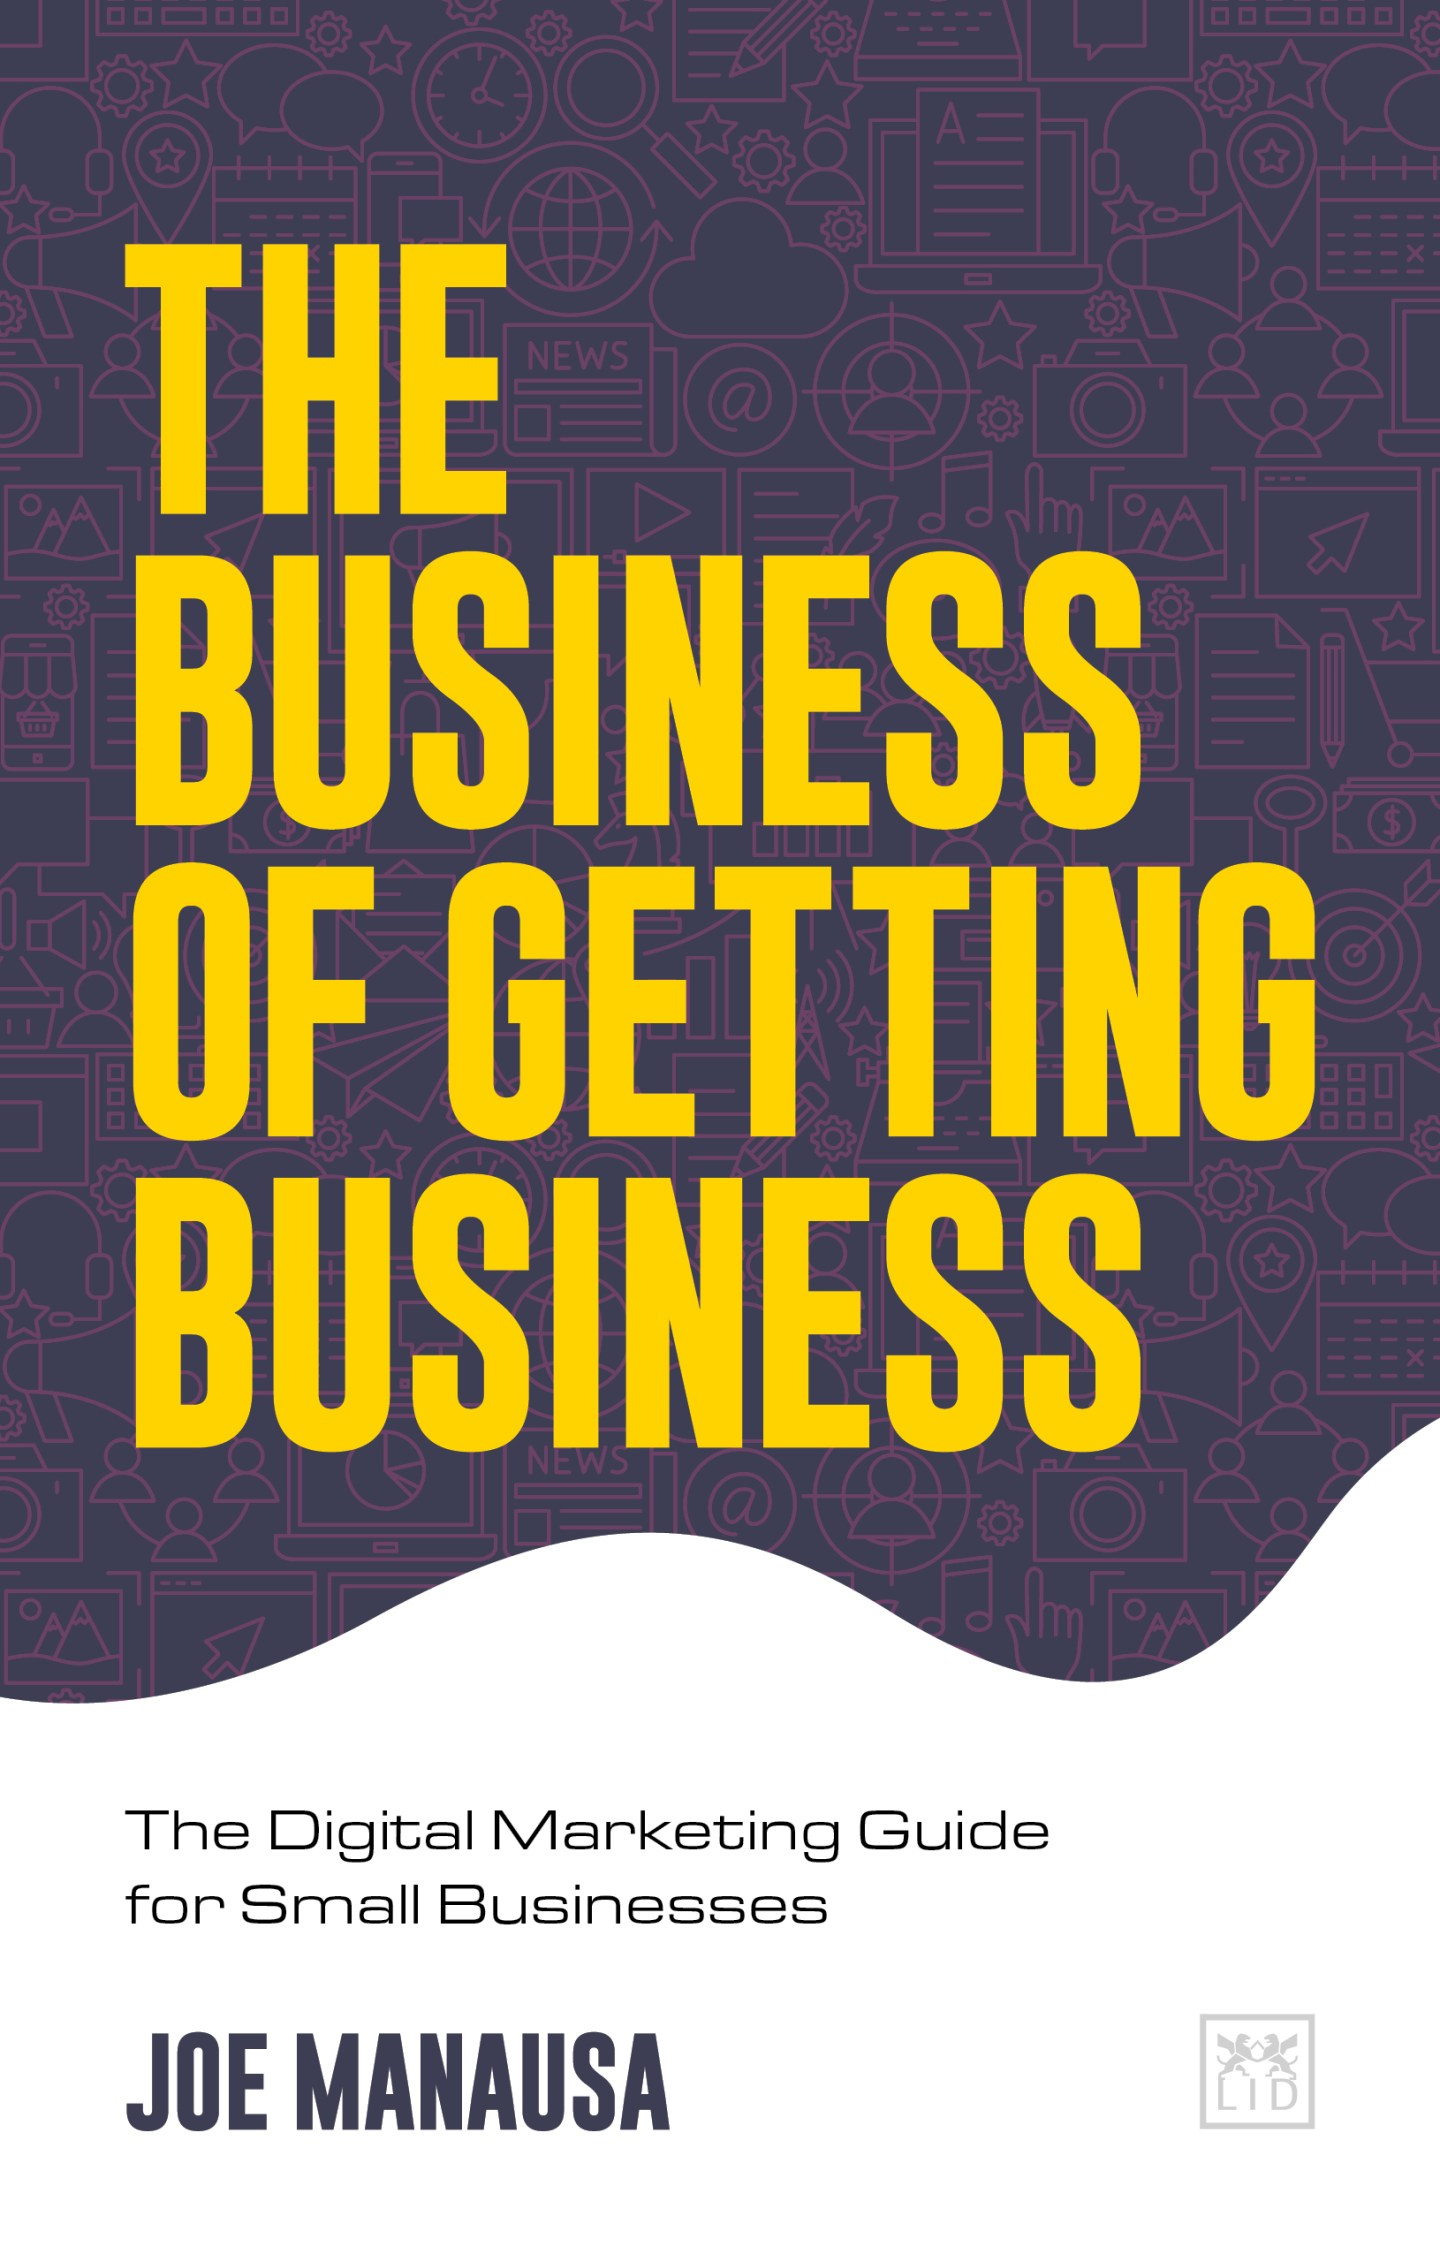 The Business of Getting Business Joe Manausa